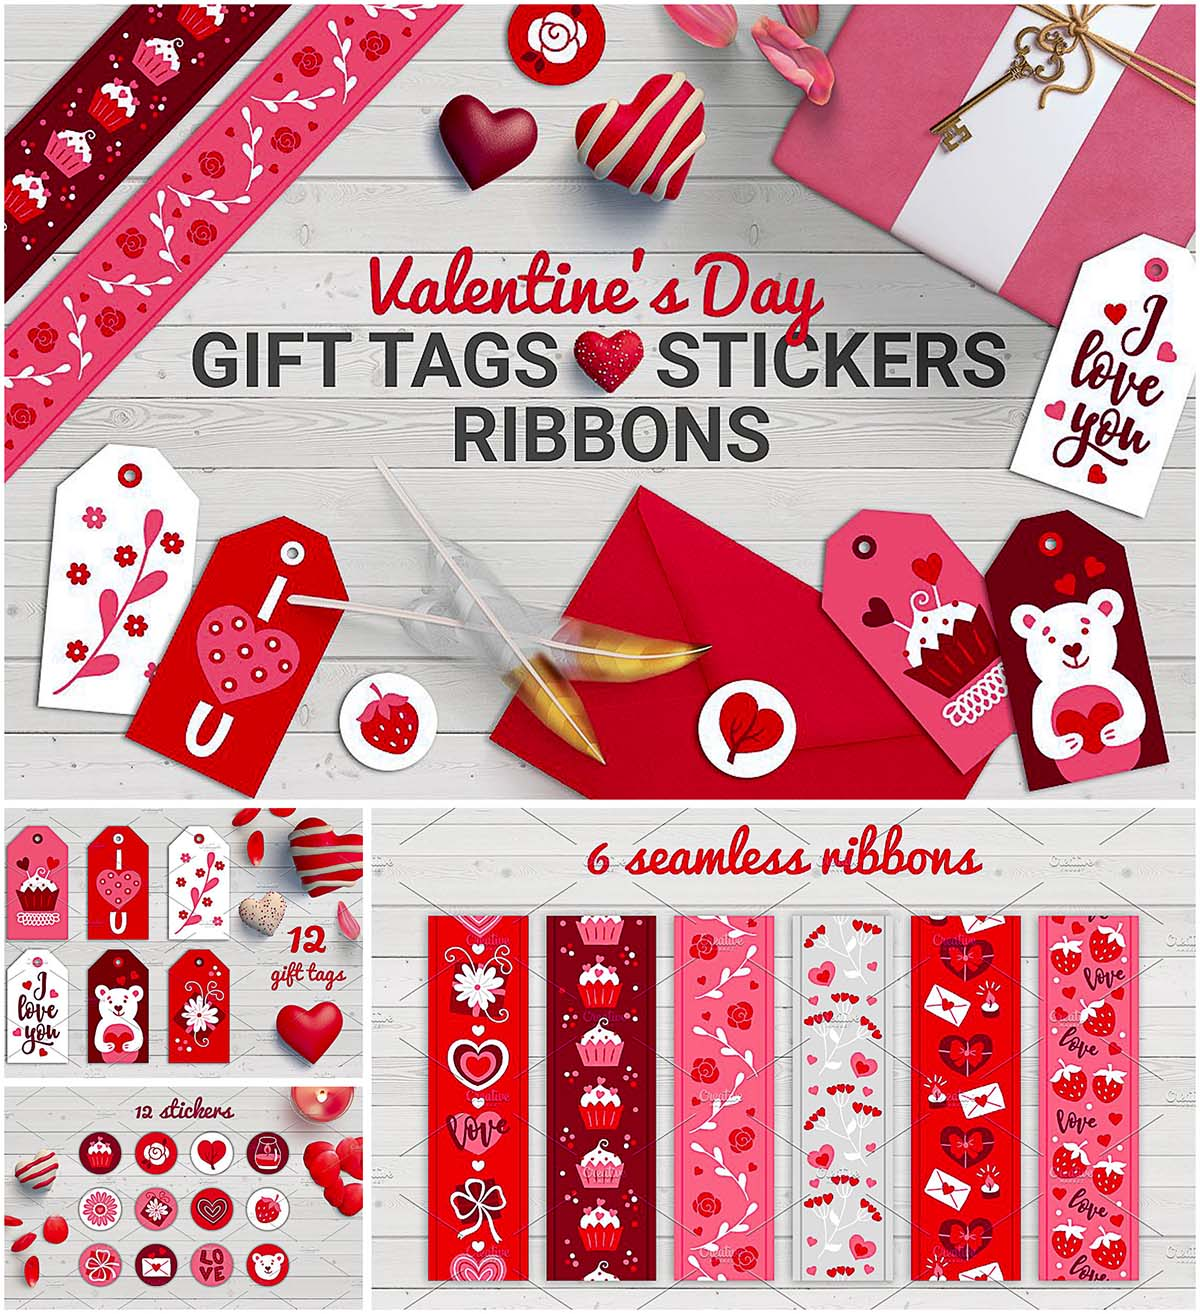 Valentine's Day stickers tags and ribbons set